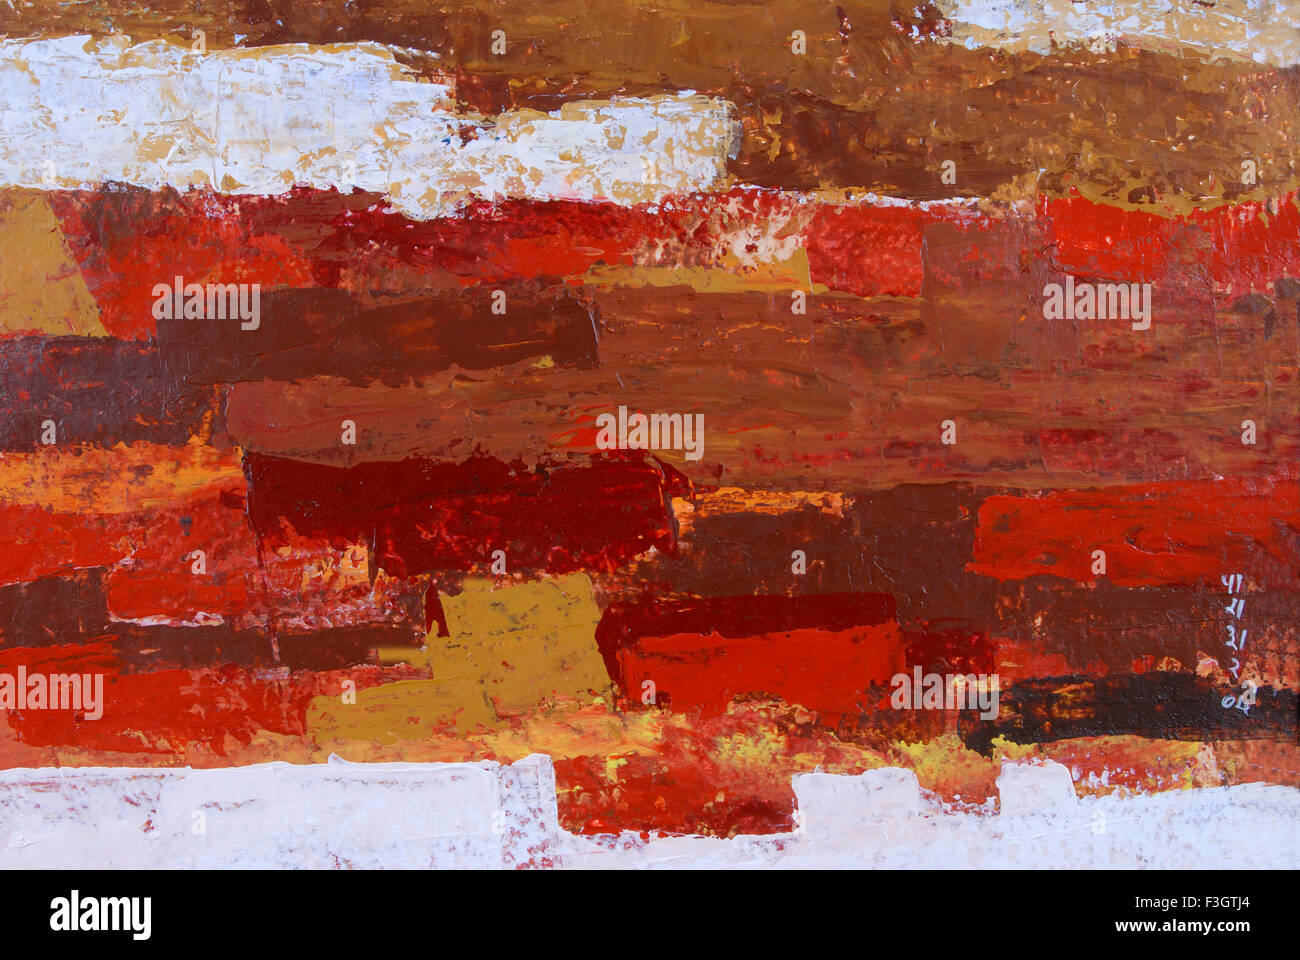 Impression of Jaipur city acrylic colors on handmade paper - Stock Image